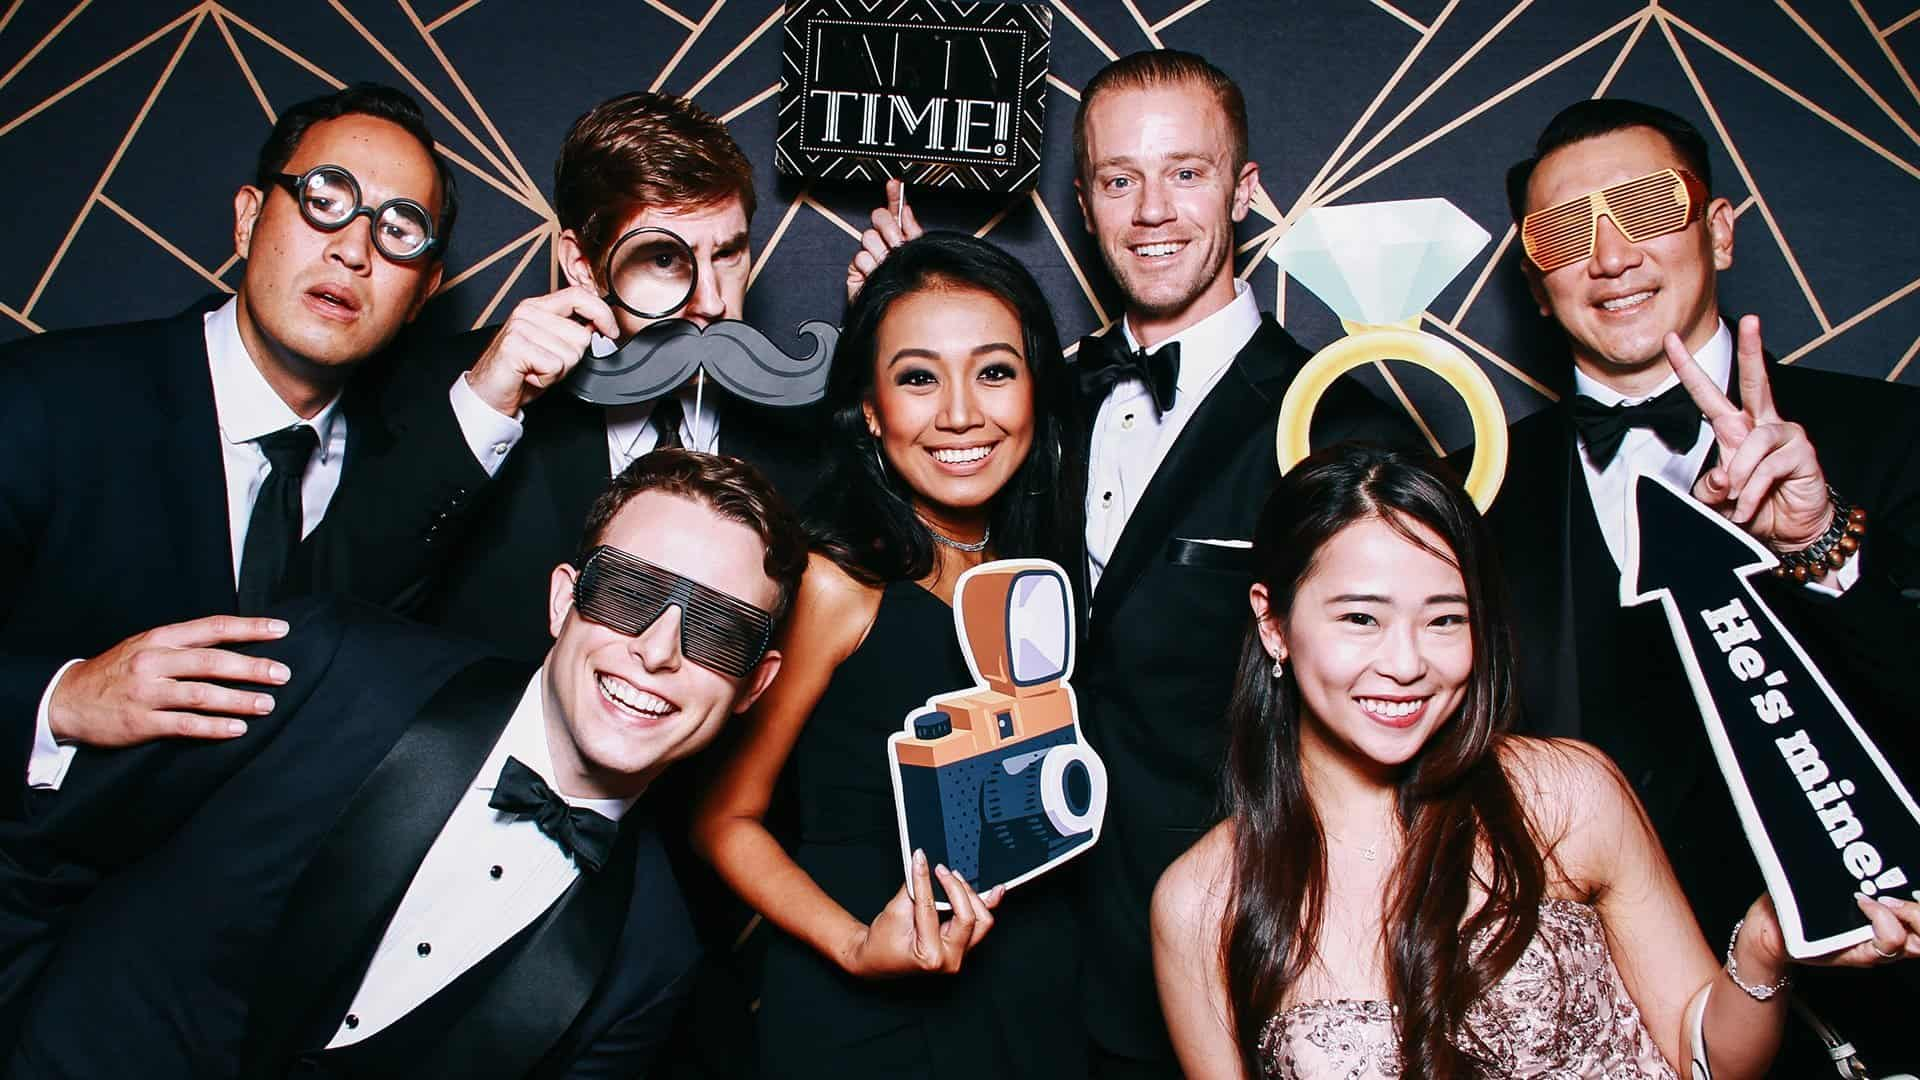 Classic Style Corporate Photo Booth